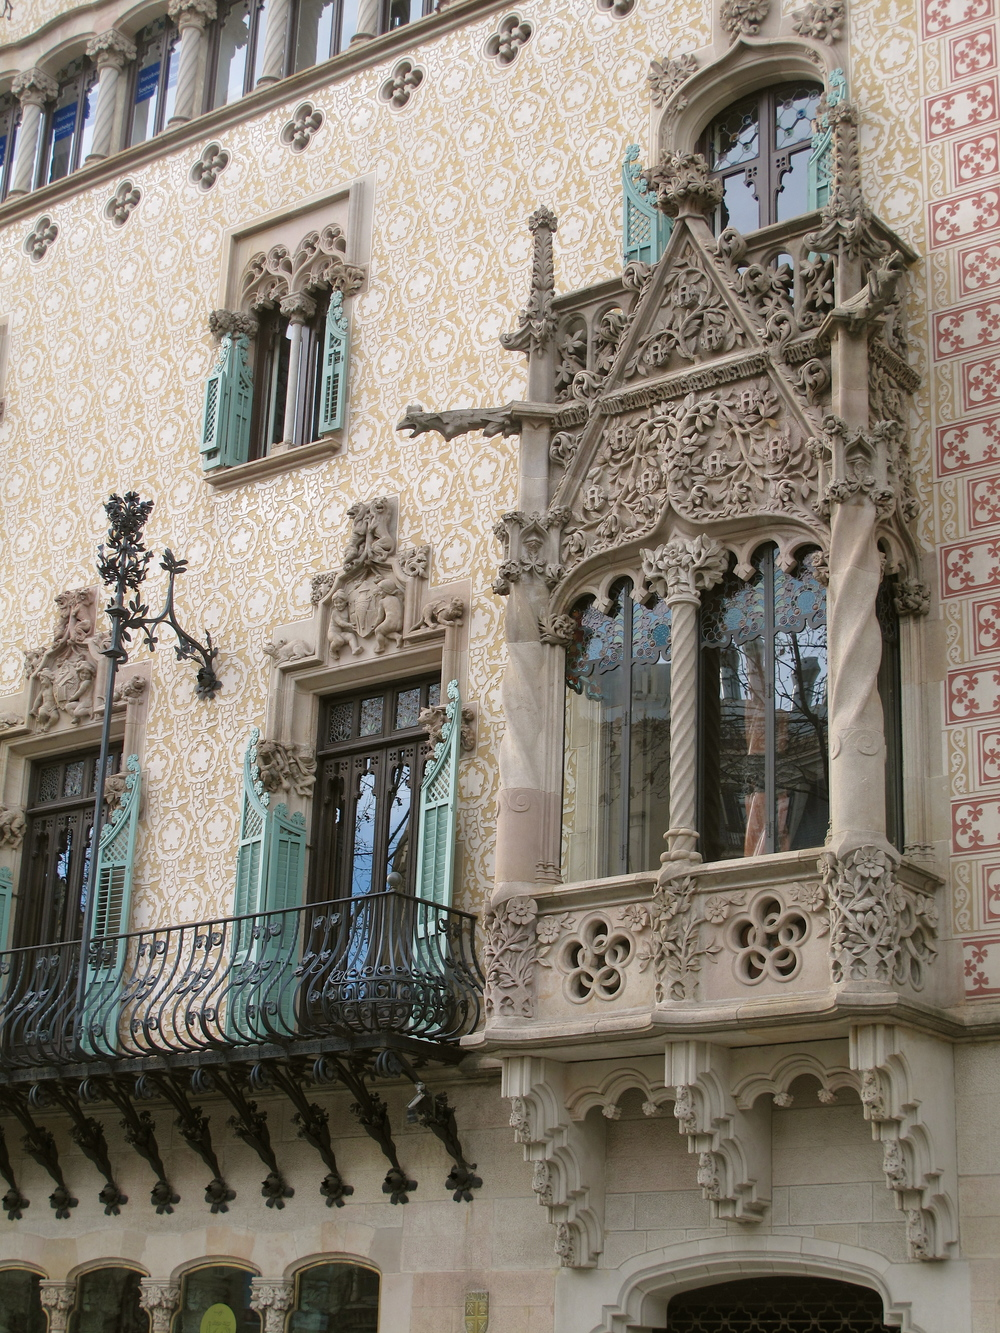 extended windows and organic detailing on stonework in Barcelona